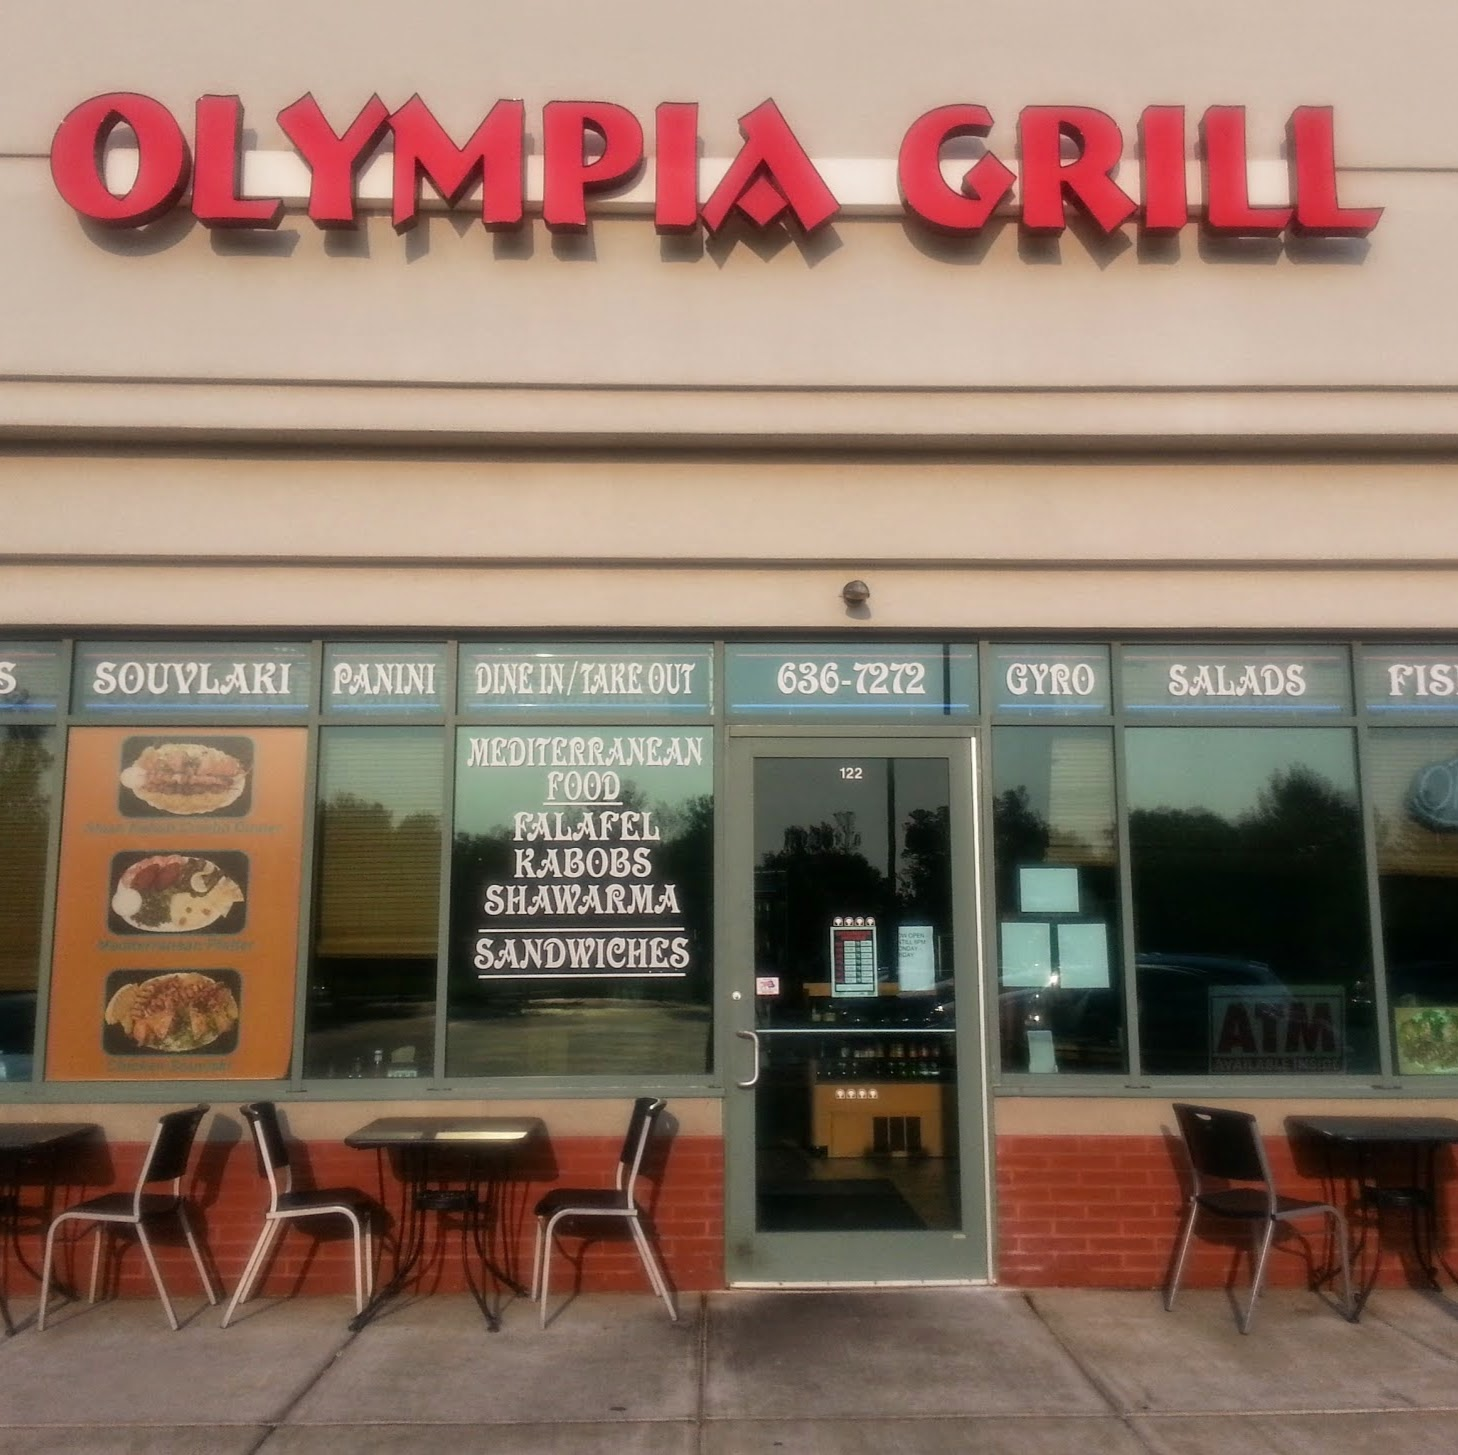 The Olympia Grill storefront, complete with our sign and window decals highlighting our Greek and Lebanese specialty dishes.